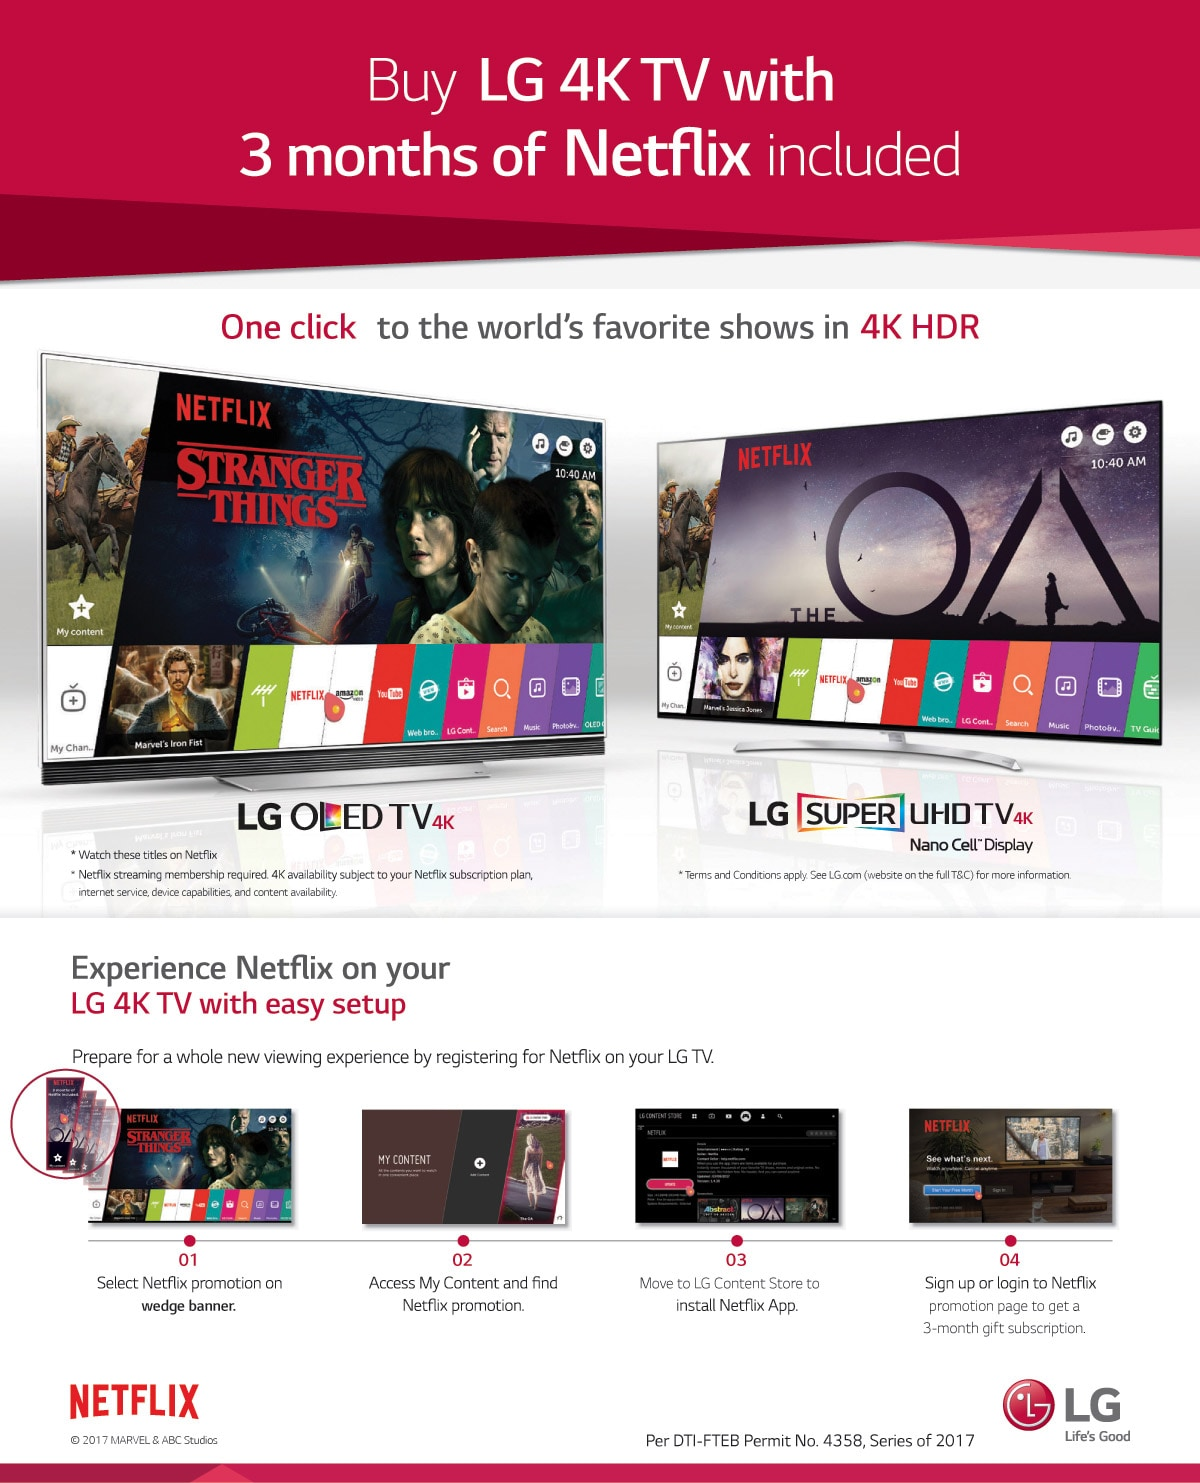 ENJOY FREE 3 MONTH NETFLIX SUBSCRIPTION WITH LG TVs